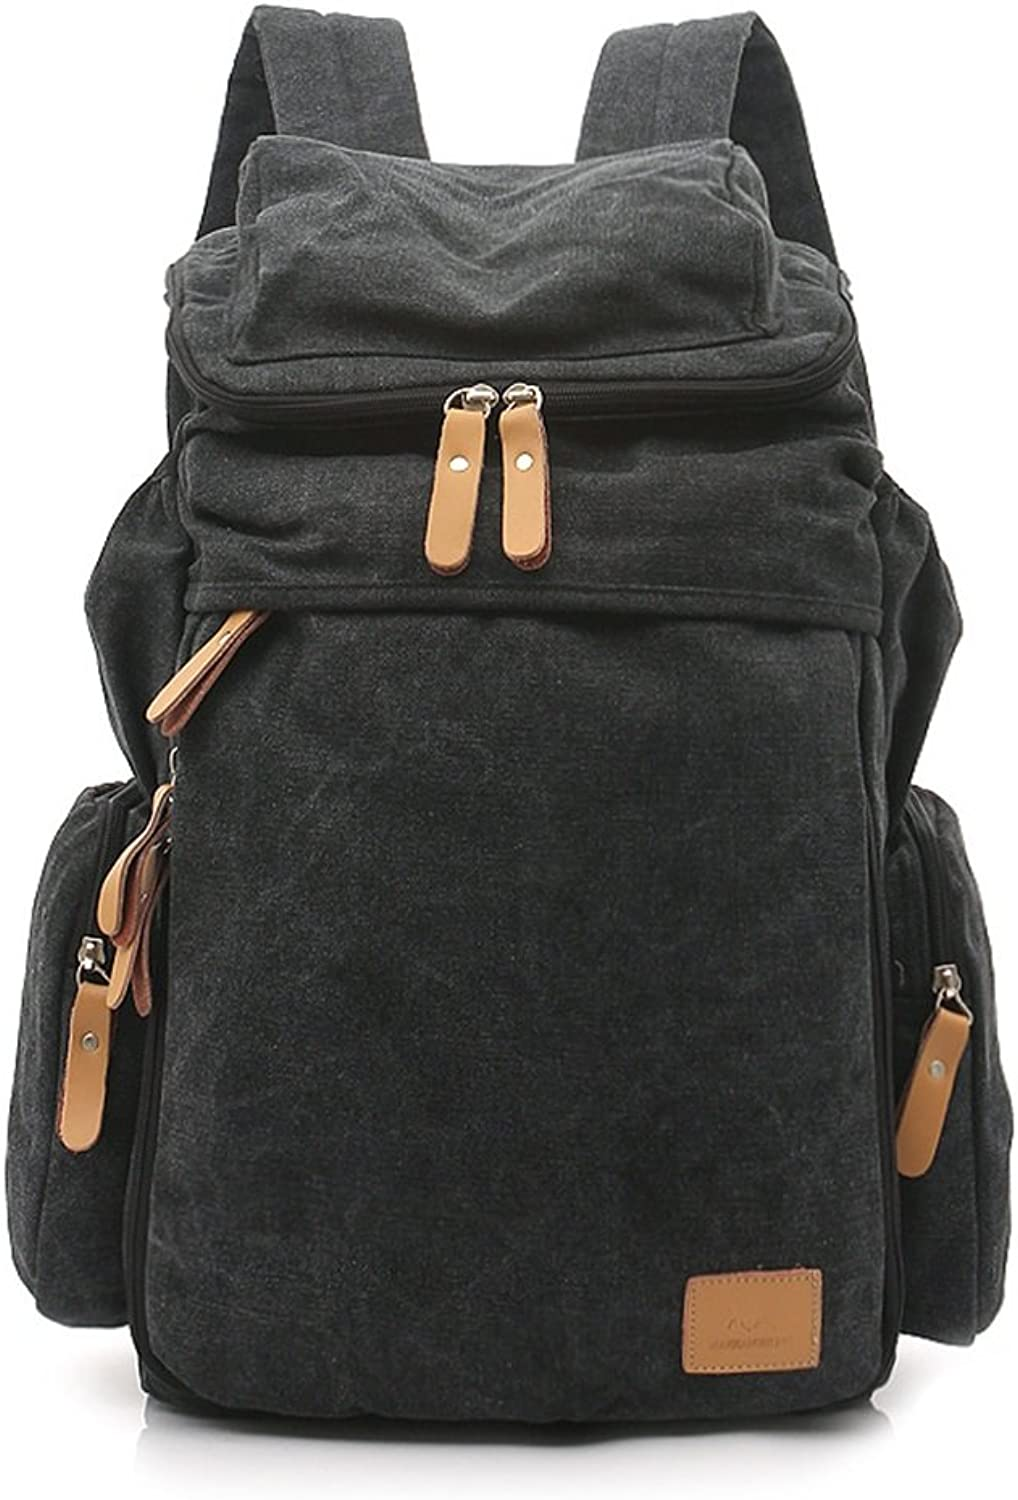 Vvvso Unisex Vintage Military Canvas Backpack for Outdoor Hiking Camping Travelling